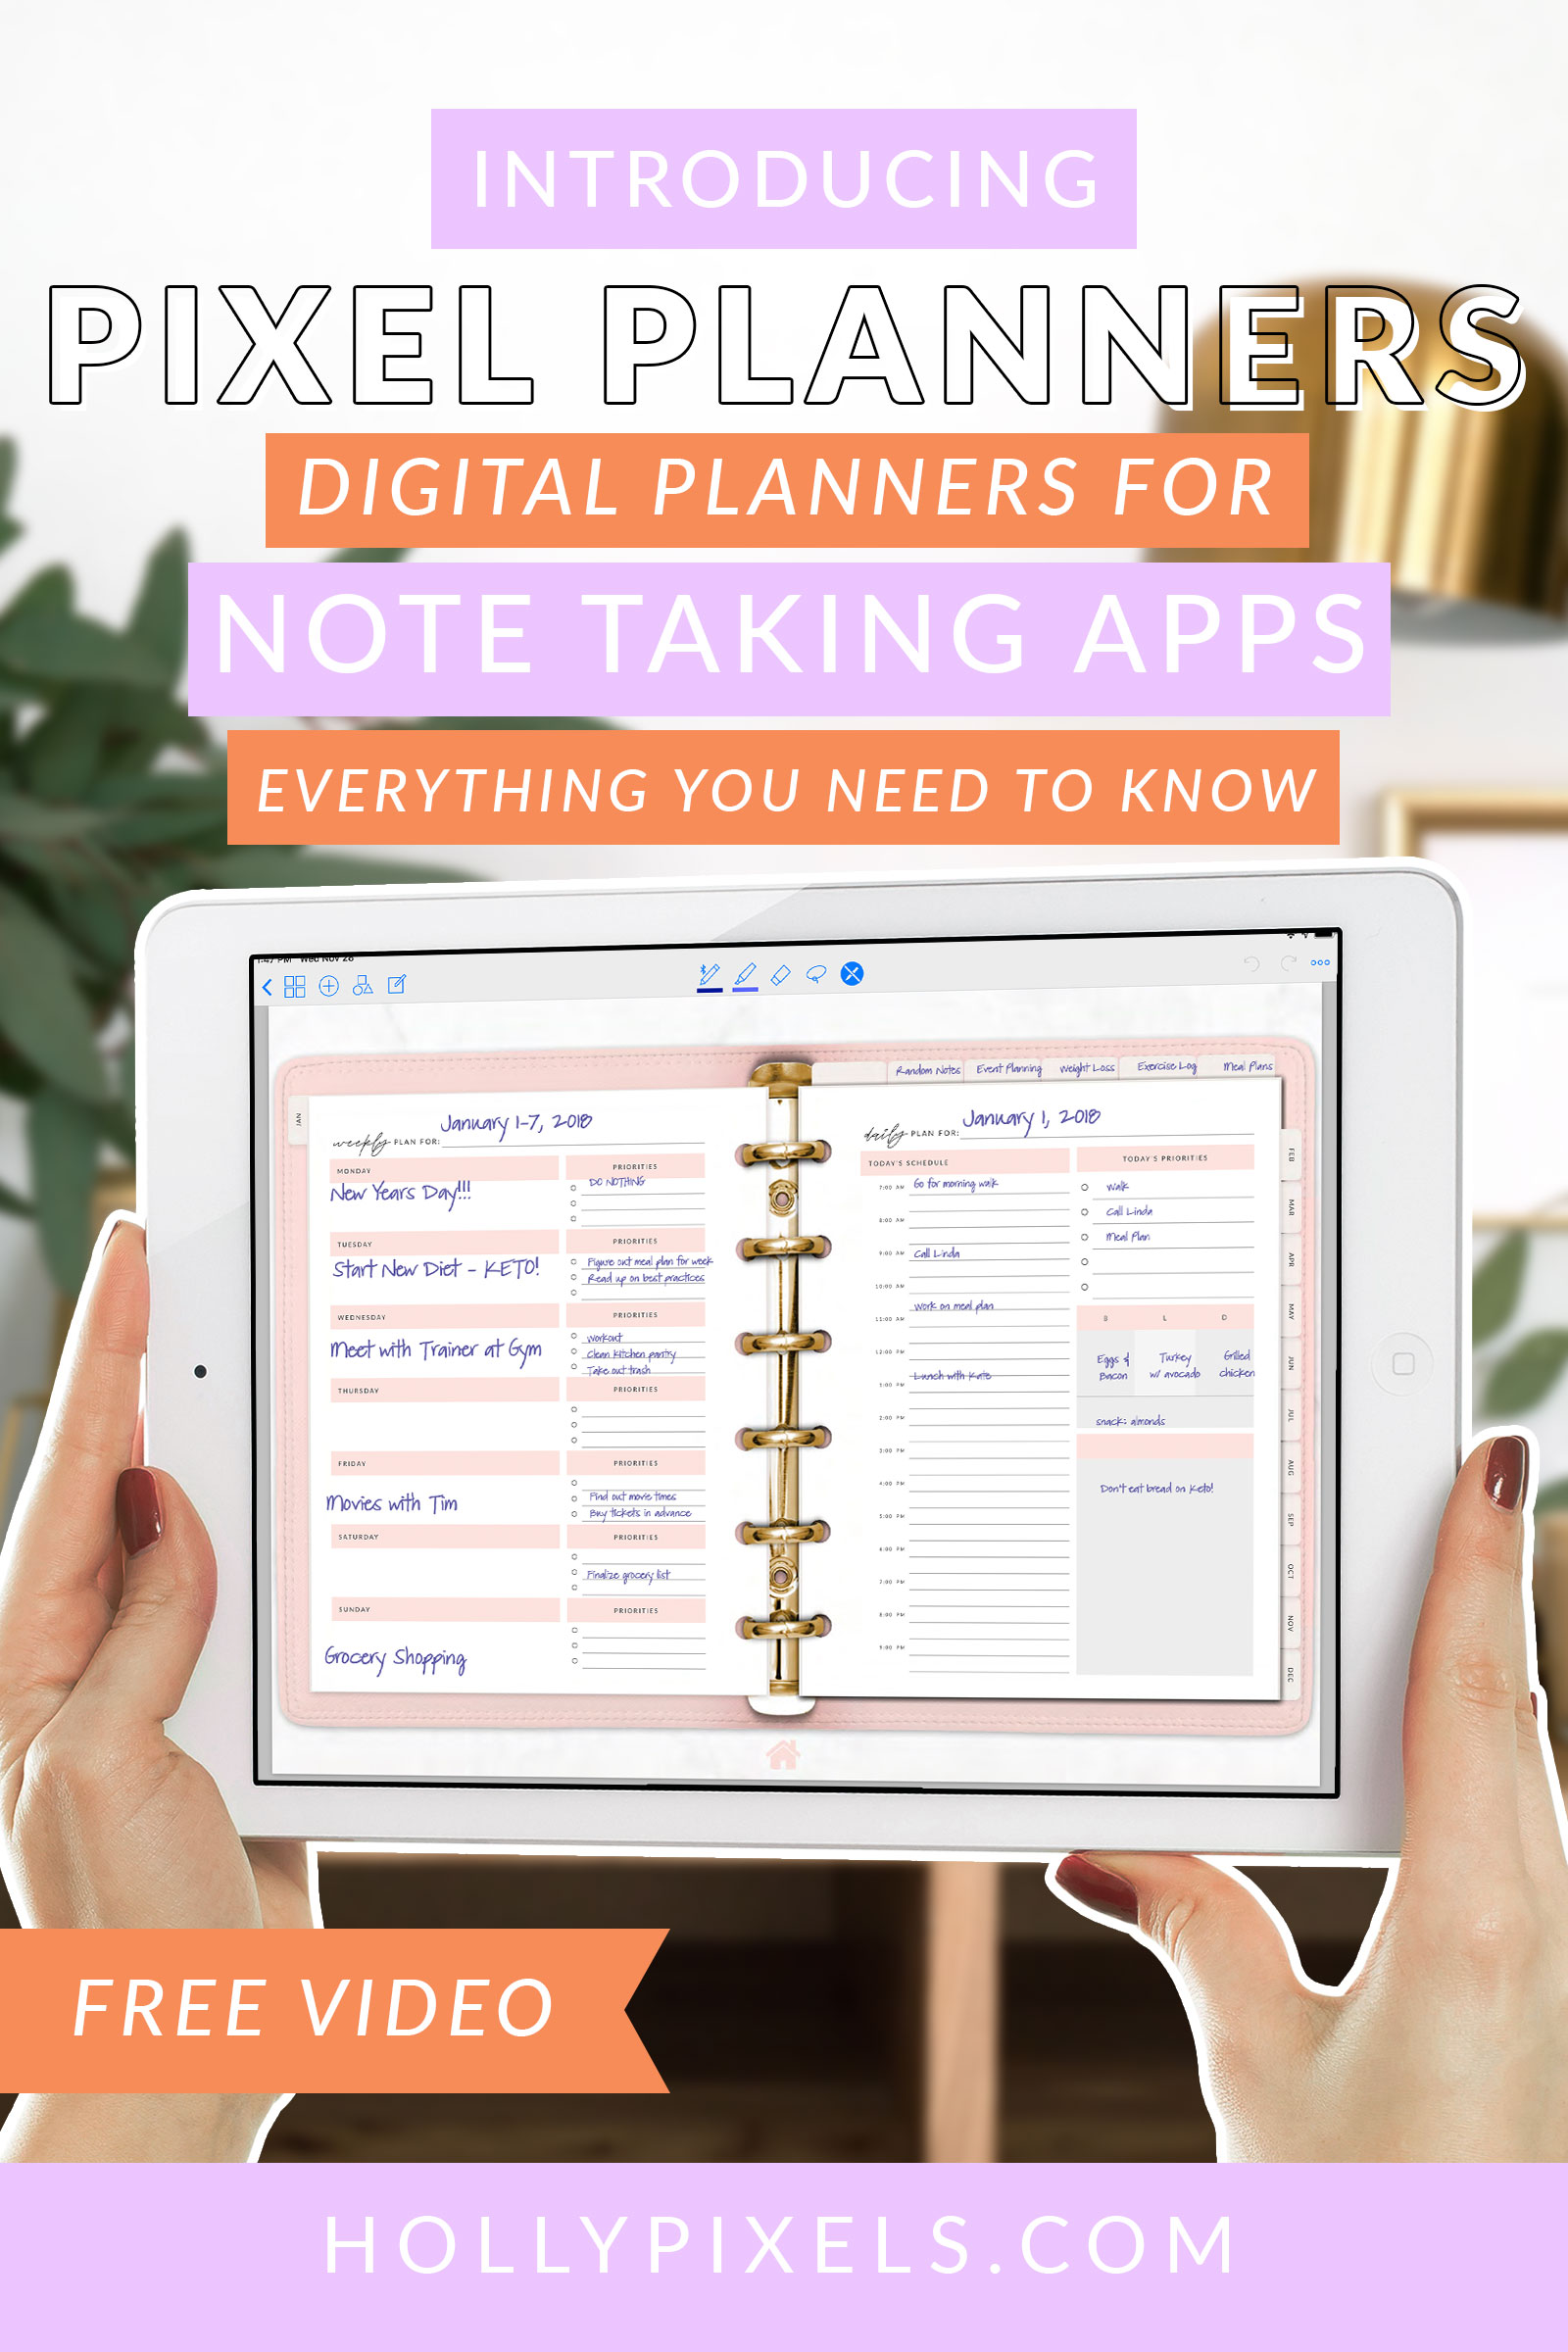 digital-planners-for-ipad-goodnotes-pixel-planner-by-hollypixels-pinterest